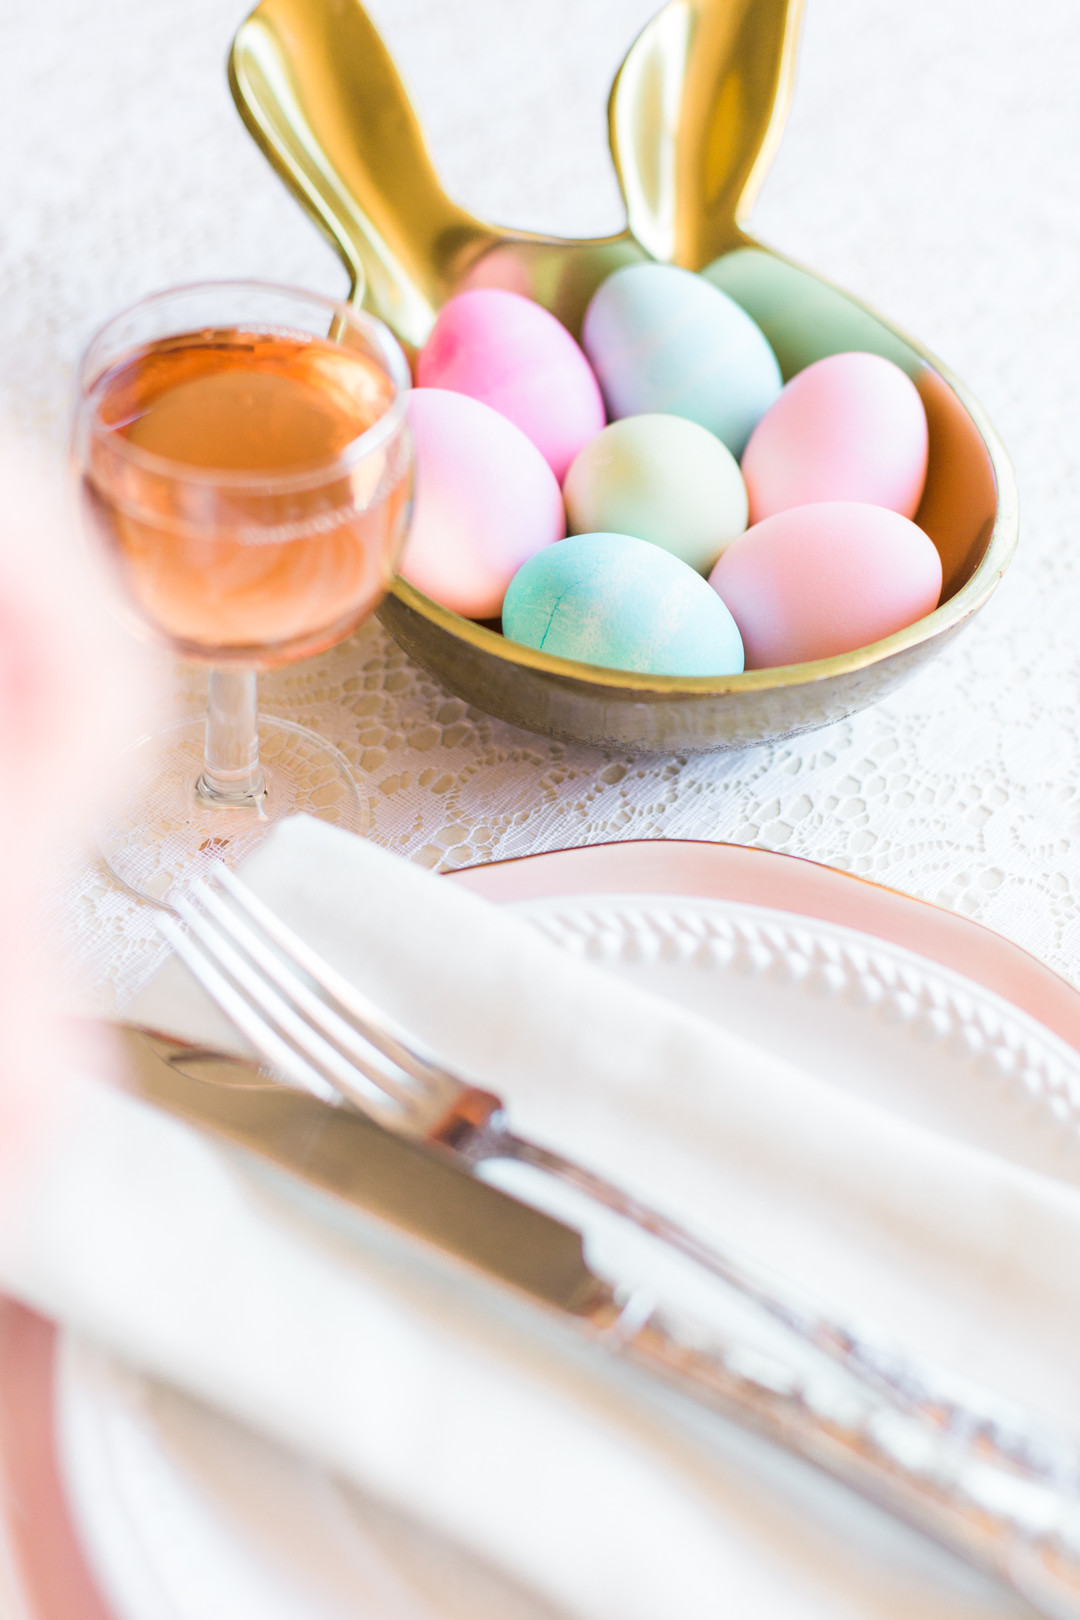 Staal_KristinaStaalPhotography_KristinaStaalPhotographyEasterTablescape201624_big Easy Entertaining: Easter Brunch Inspiration for Two